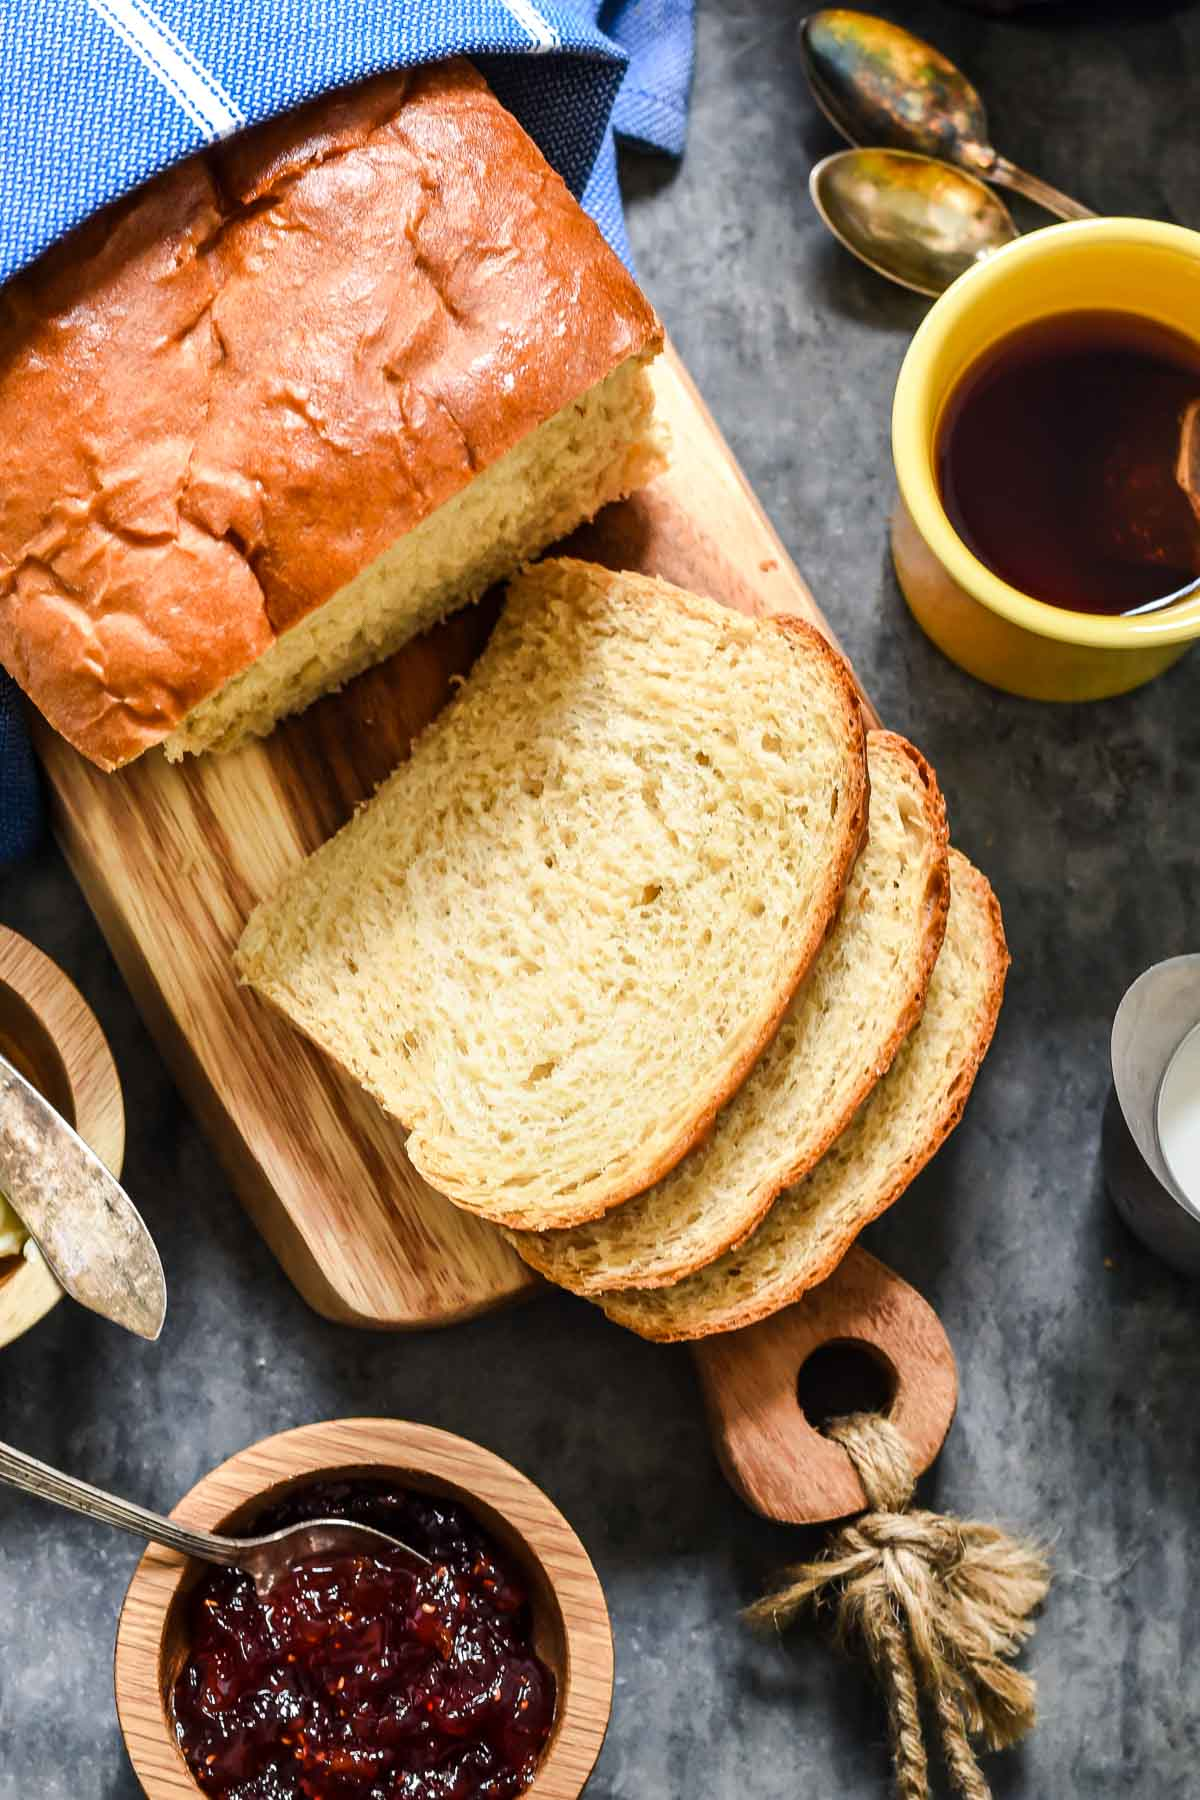 This Amish White Bread is one of the easiest homemade breads to make and it turns out a perfect fluffy loaf every time!